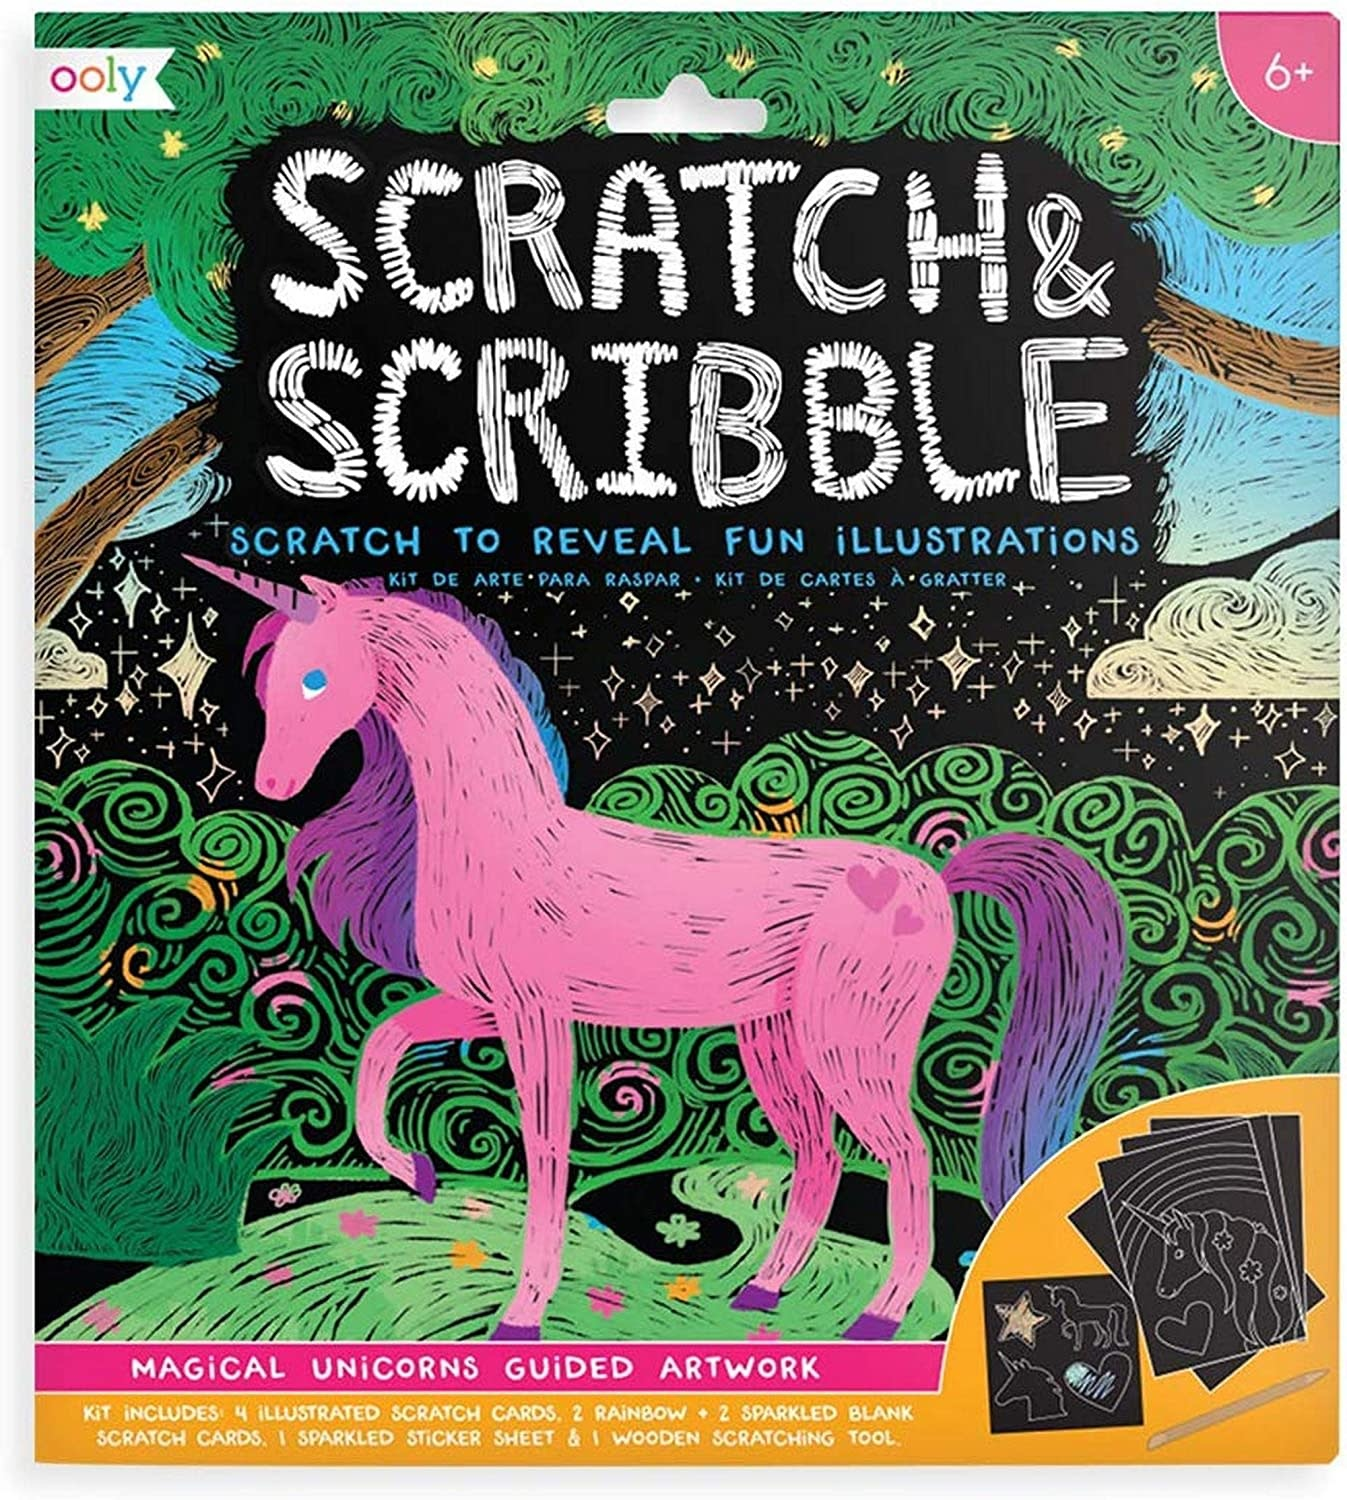 Scratch & Scribble Magical Unicorns Art Kit by Ooly